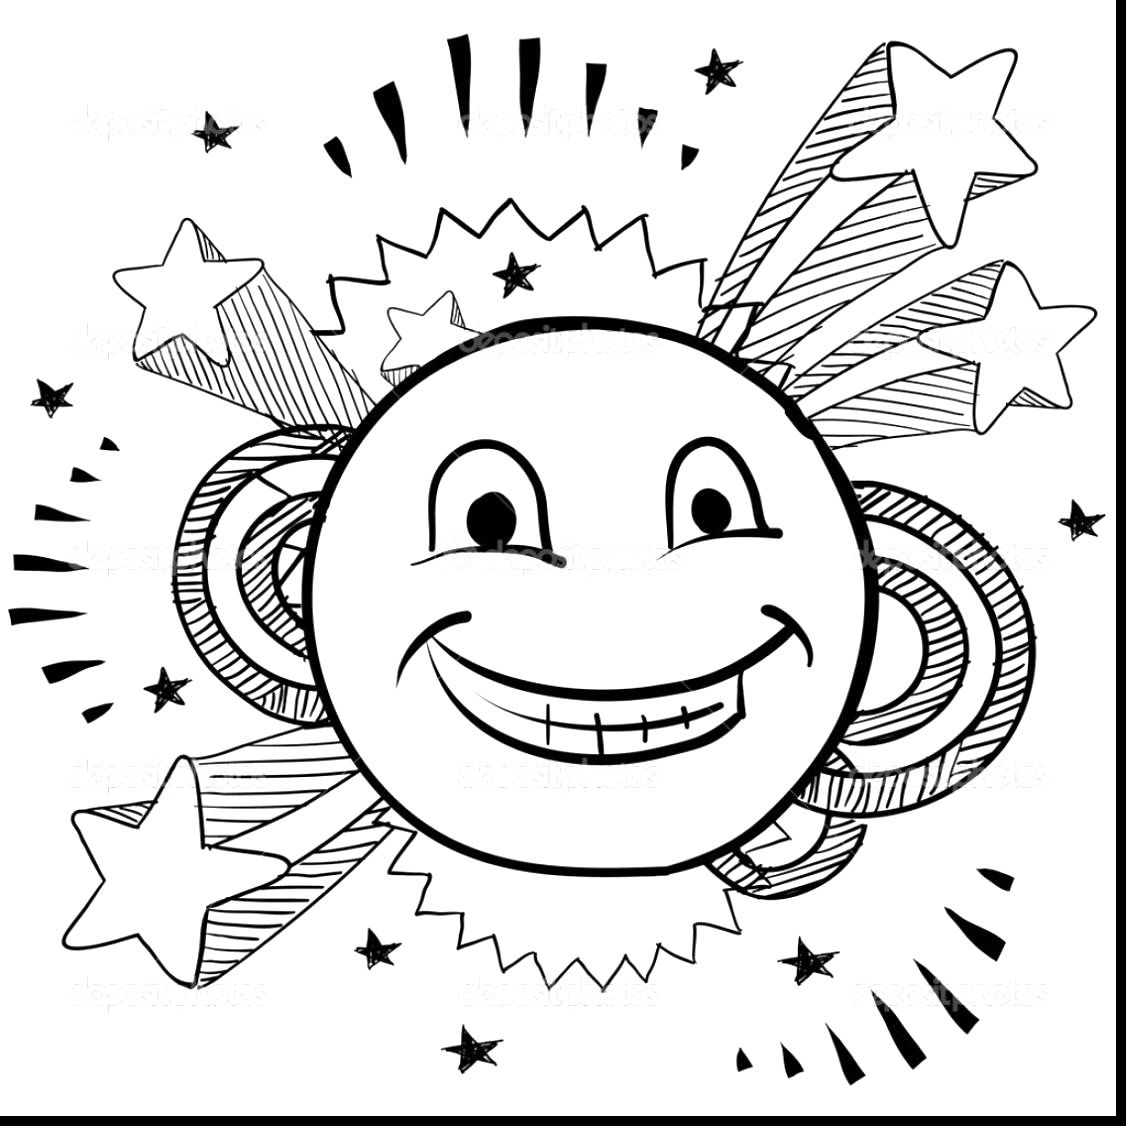 1126x1126 Inspirational Smiley Face Coloring Page For Line Drawings